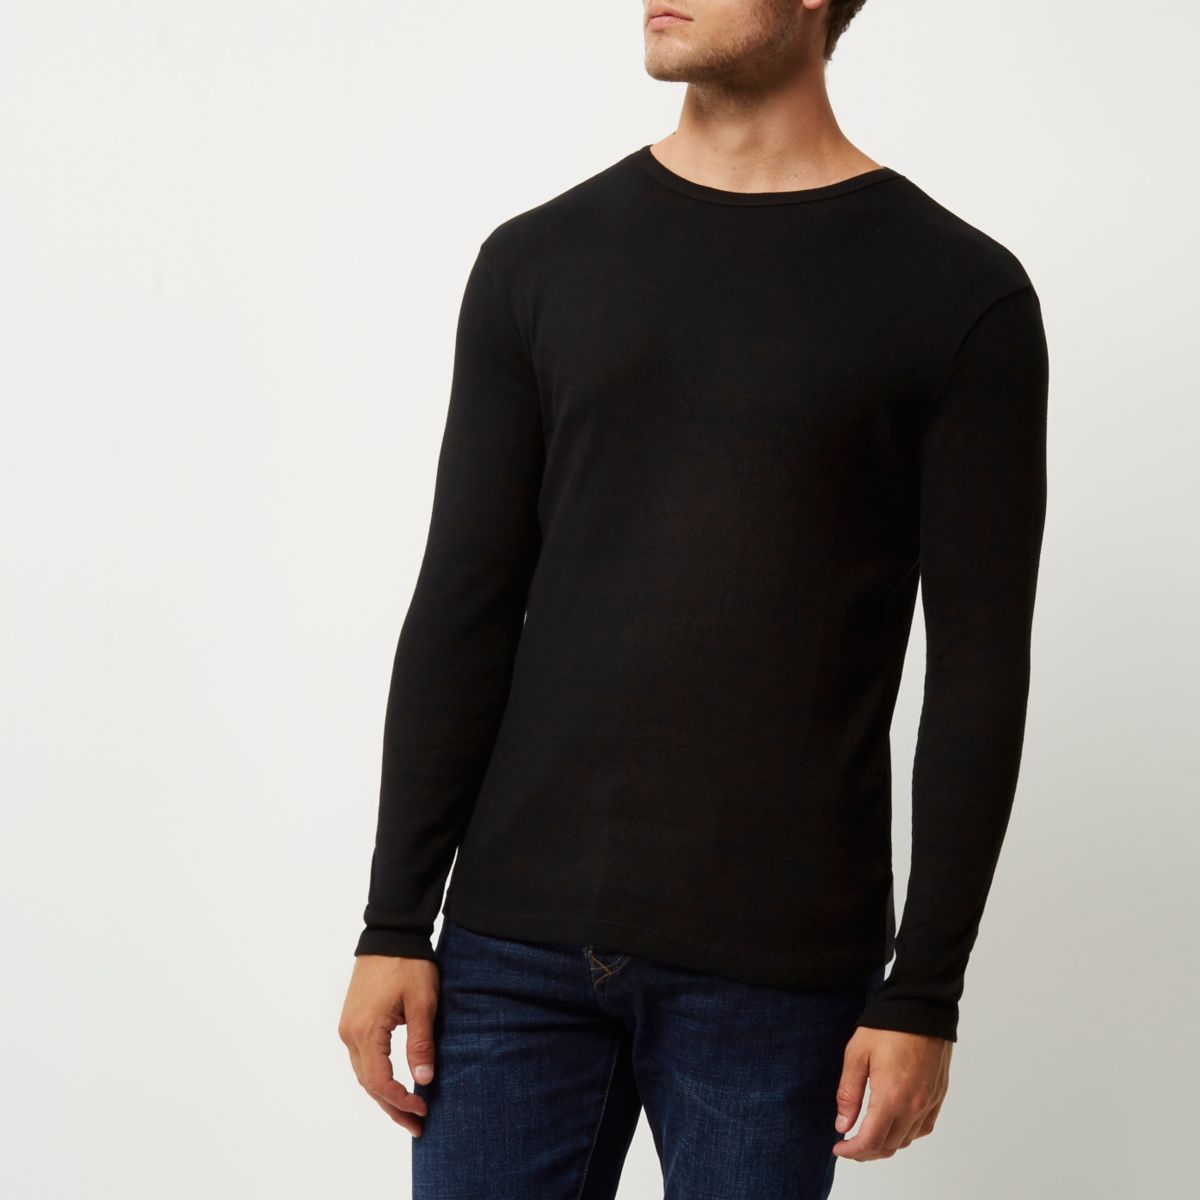 Black ribbed slim fit long sleeve T-shirt - Long Sleeve T-Shirts ...